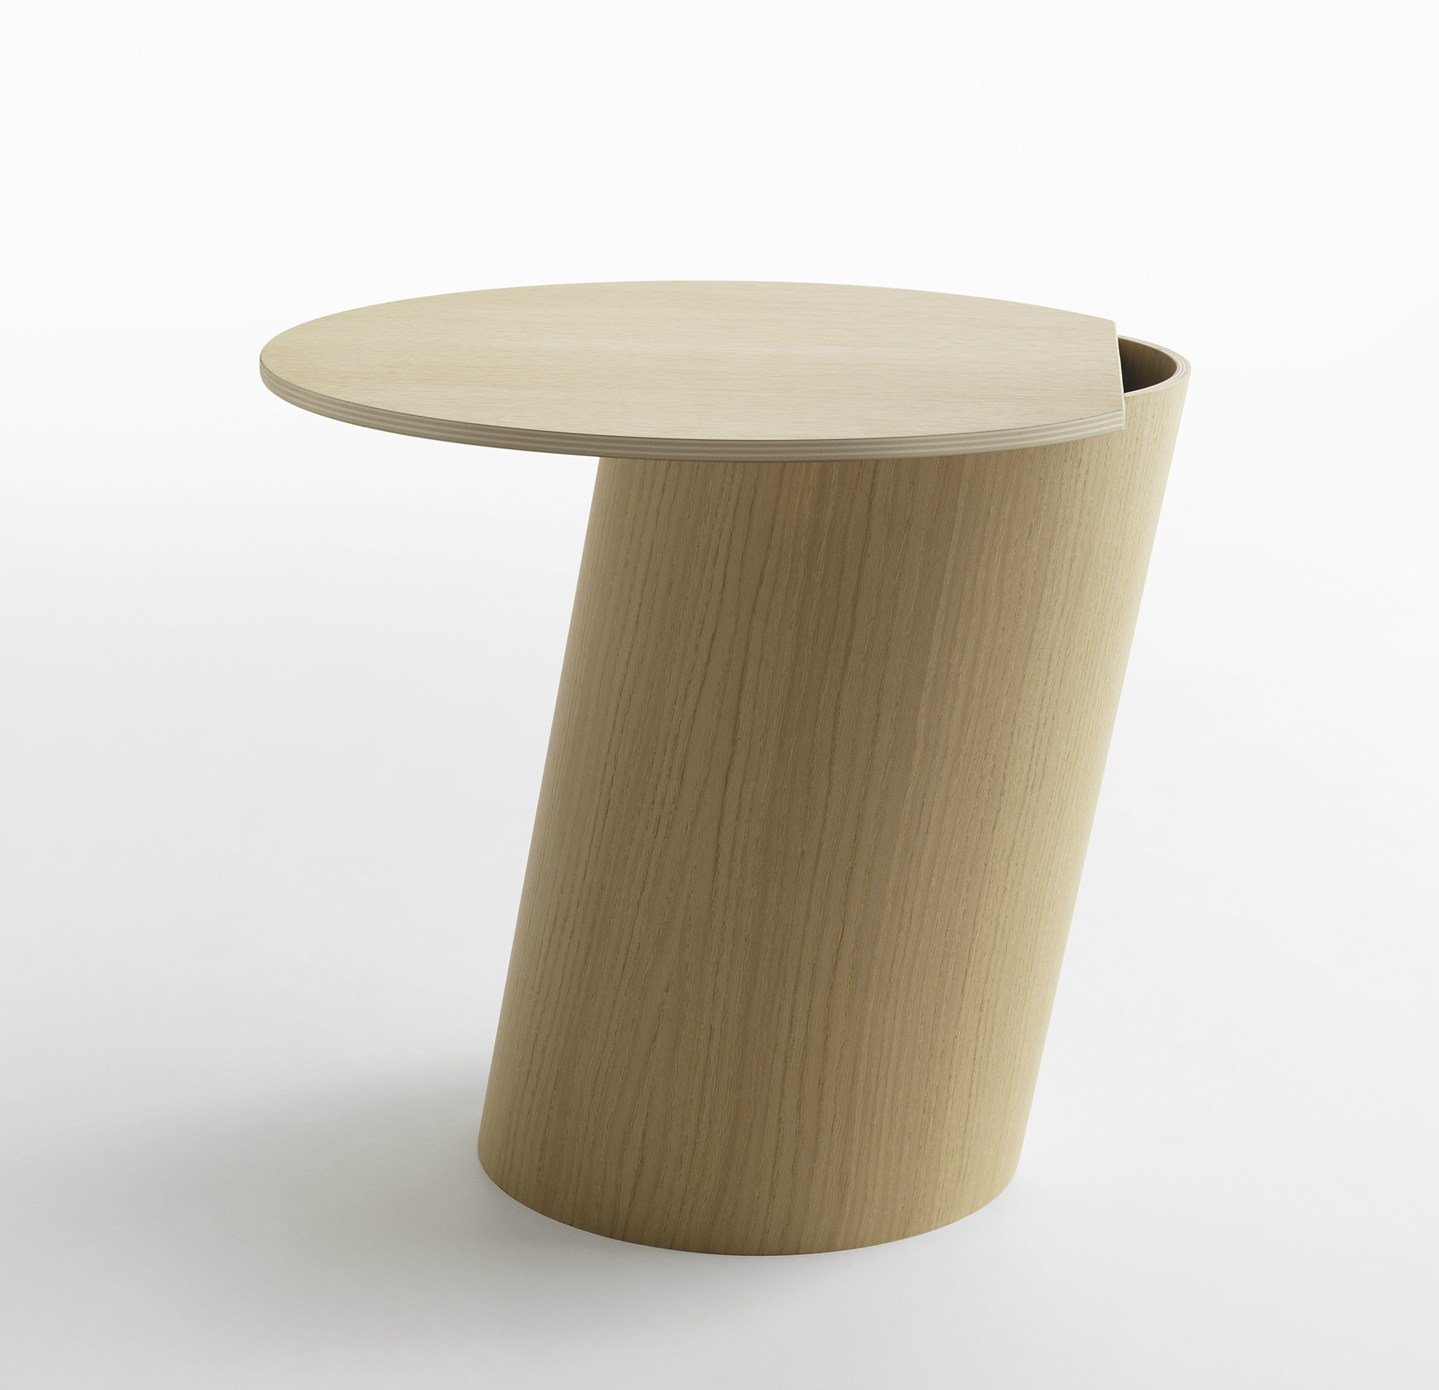 Bias Coffee Table by David Geckeler & Frank Michels for Crassevig